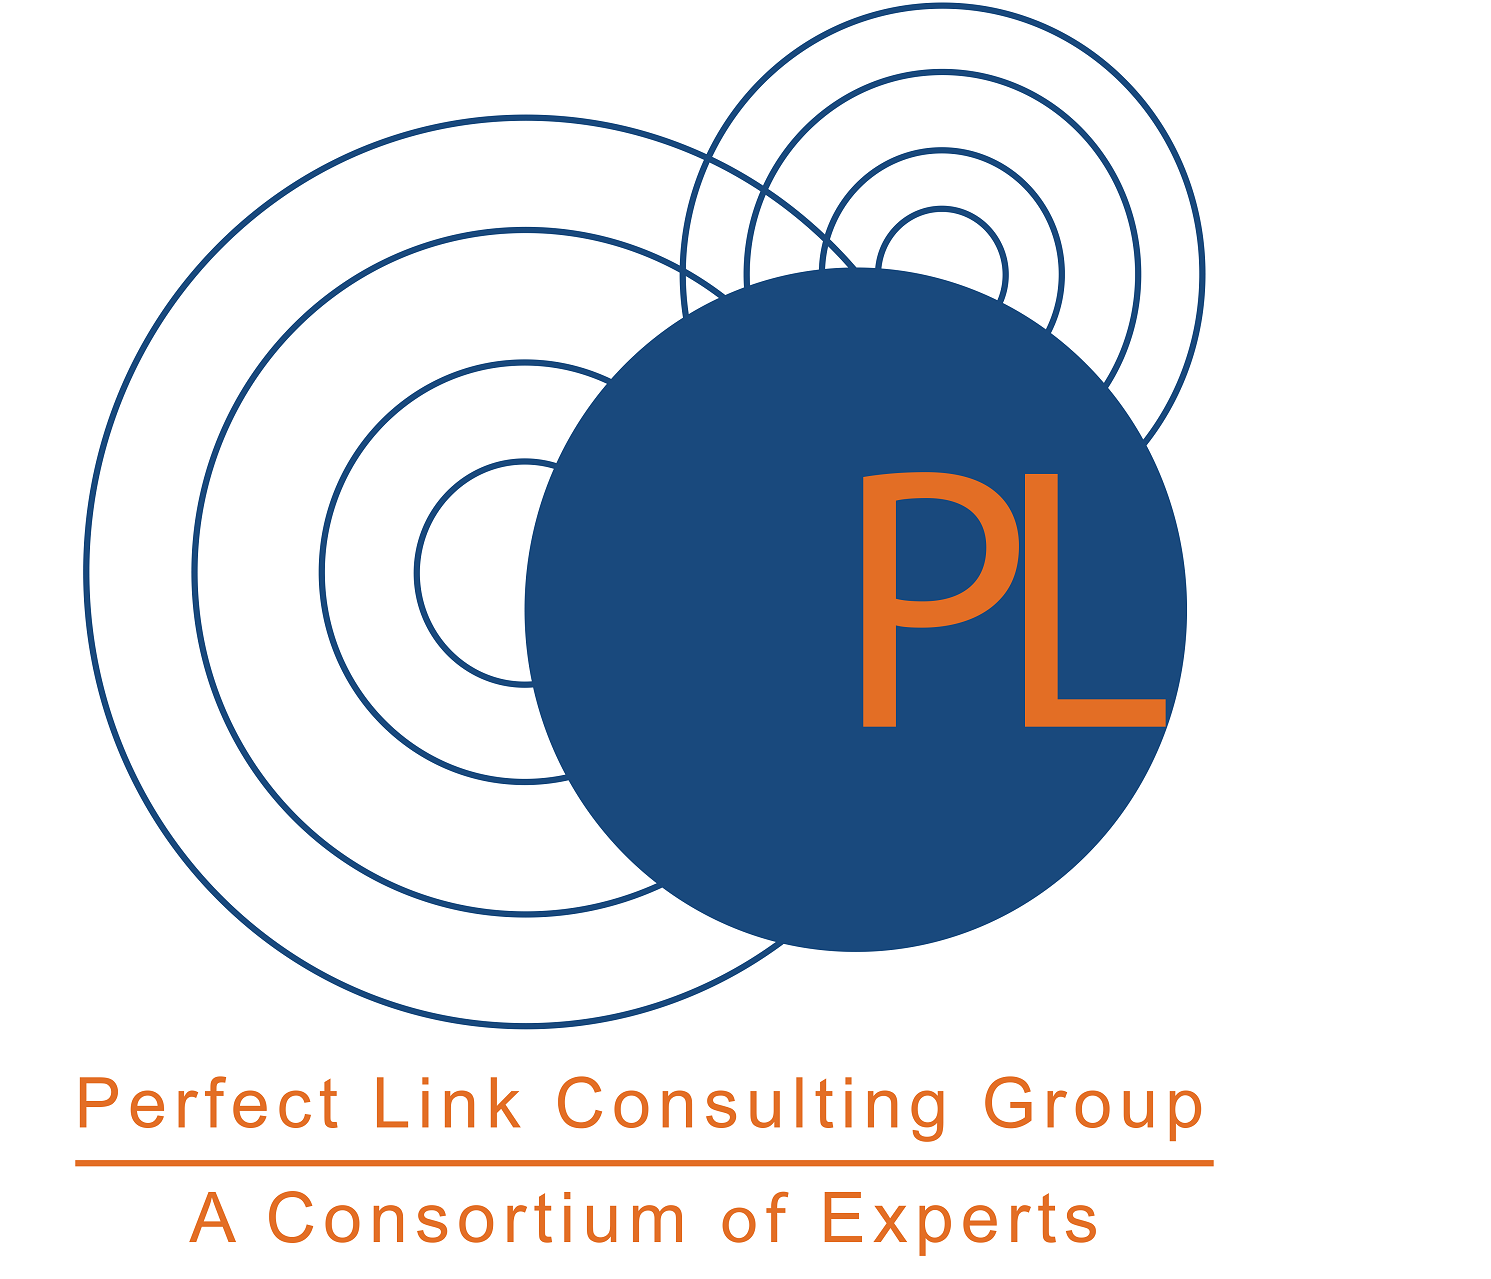 Perfect Link Consulting Group